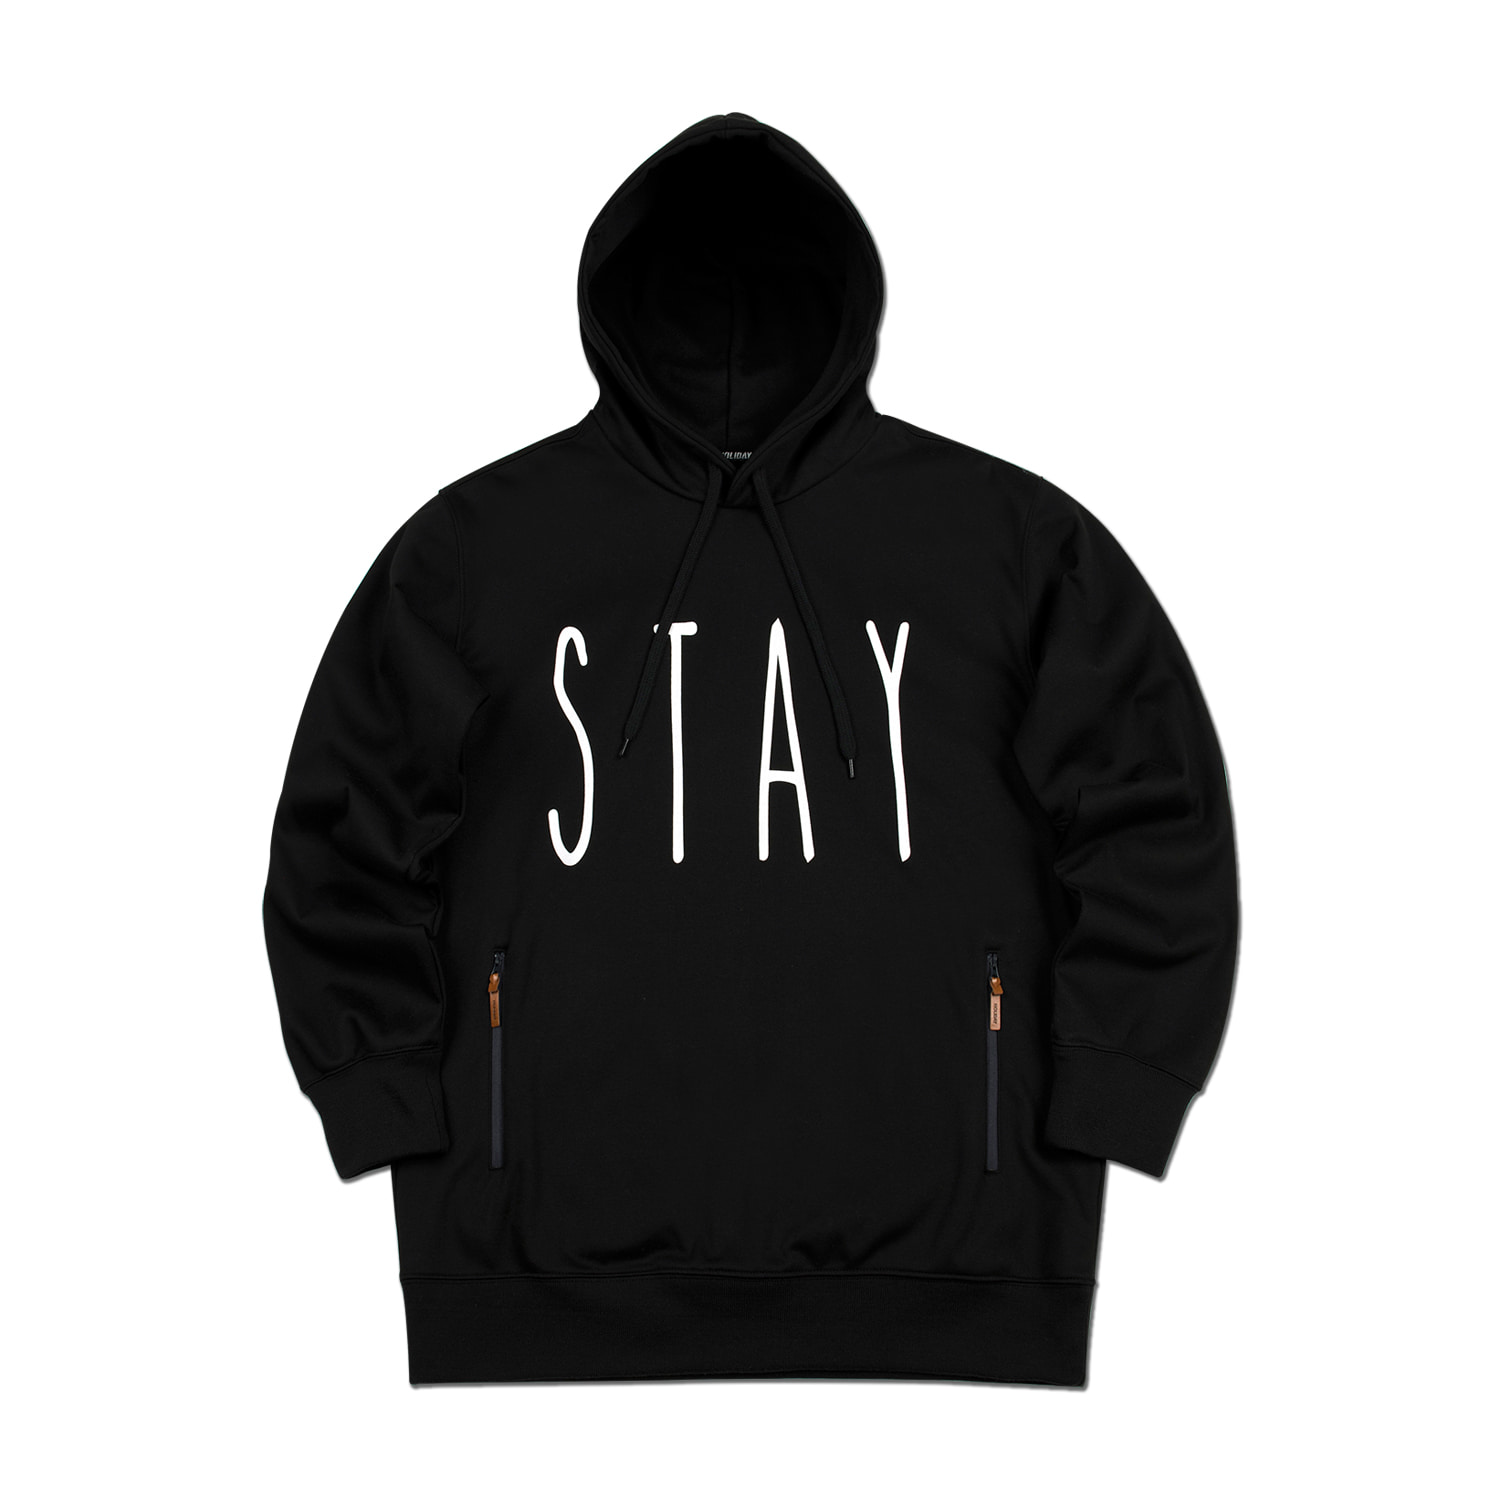 STAY waterproof hoodie[방수후드] - blackHOLIDAY OUTERWEAR